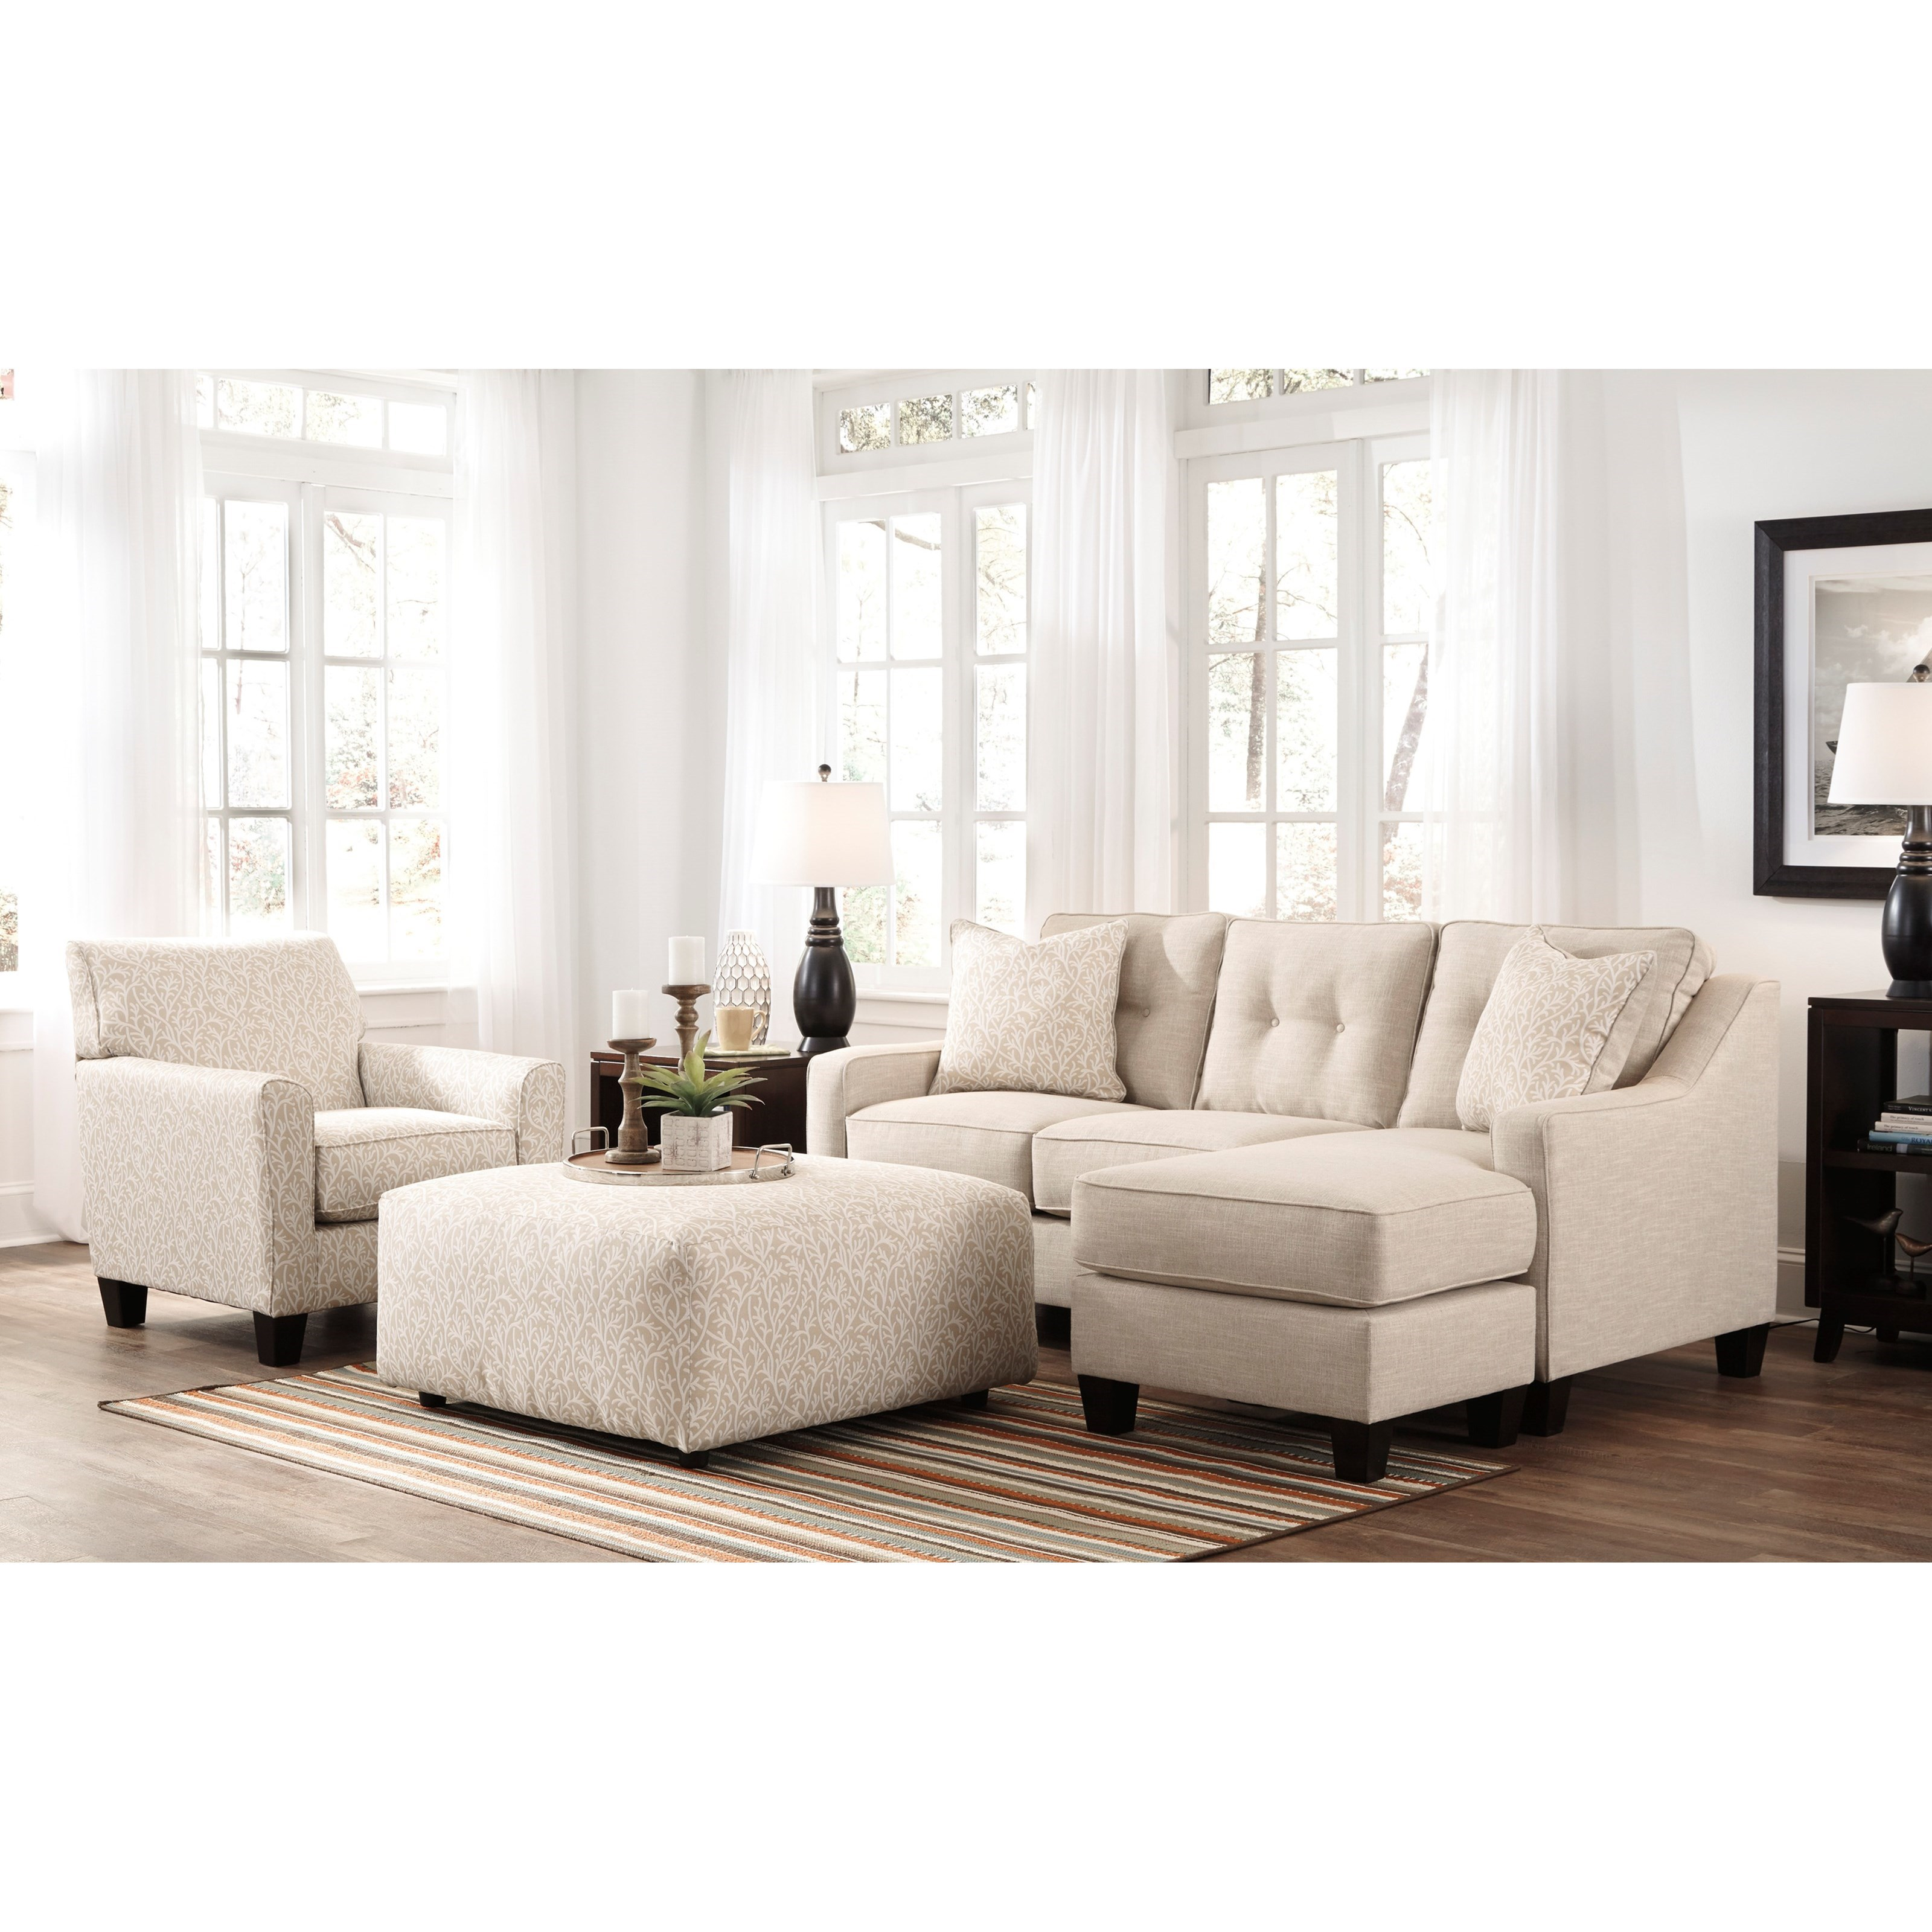 Benchcraft aldie nuvella 6870568 queen sofa chaise sleeper in performance fabric household for Daybed living room furniture